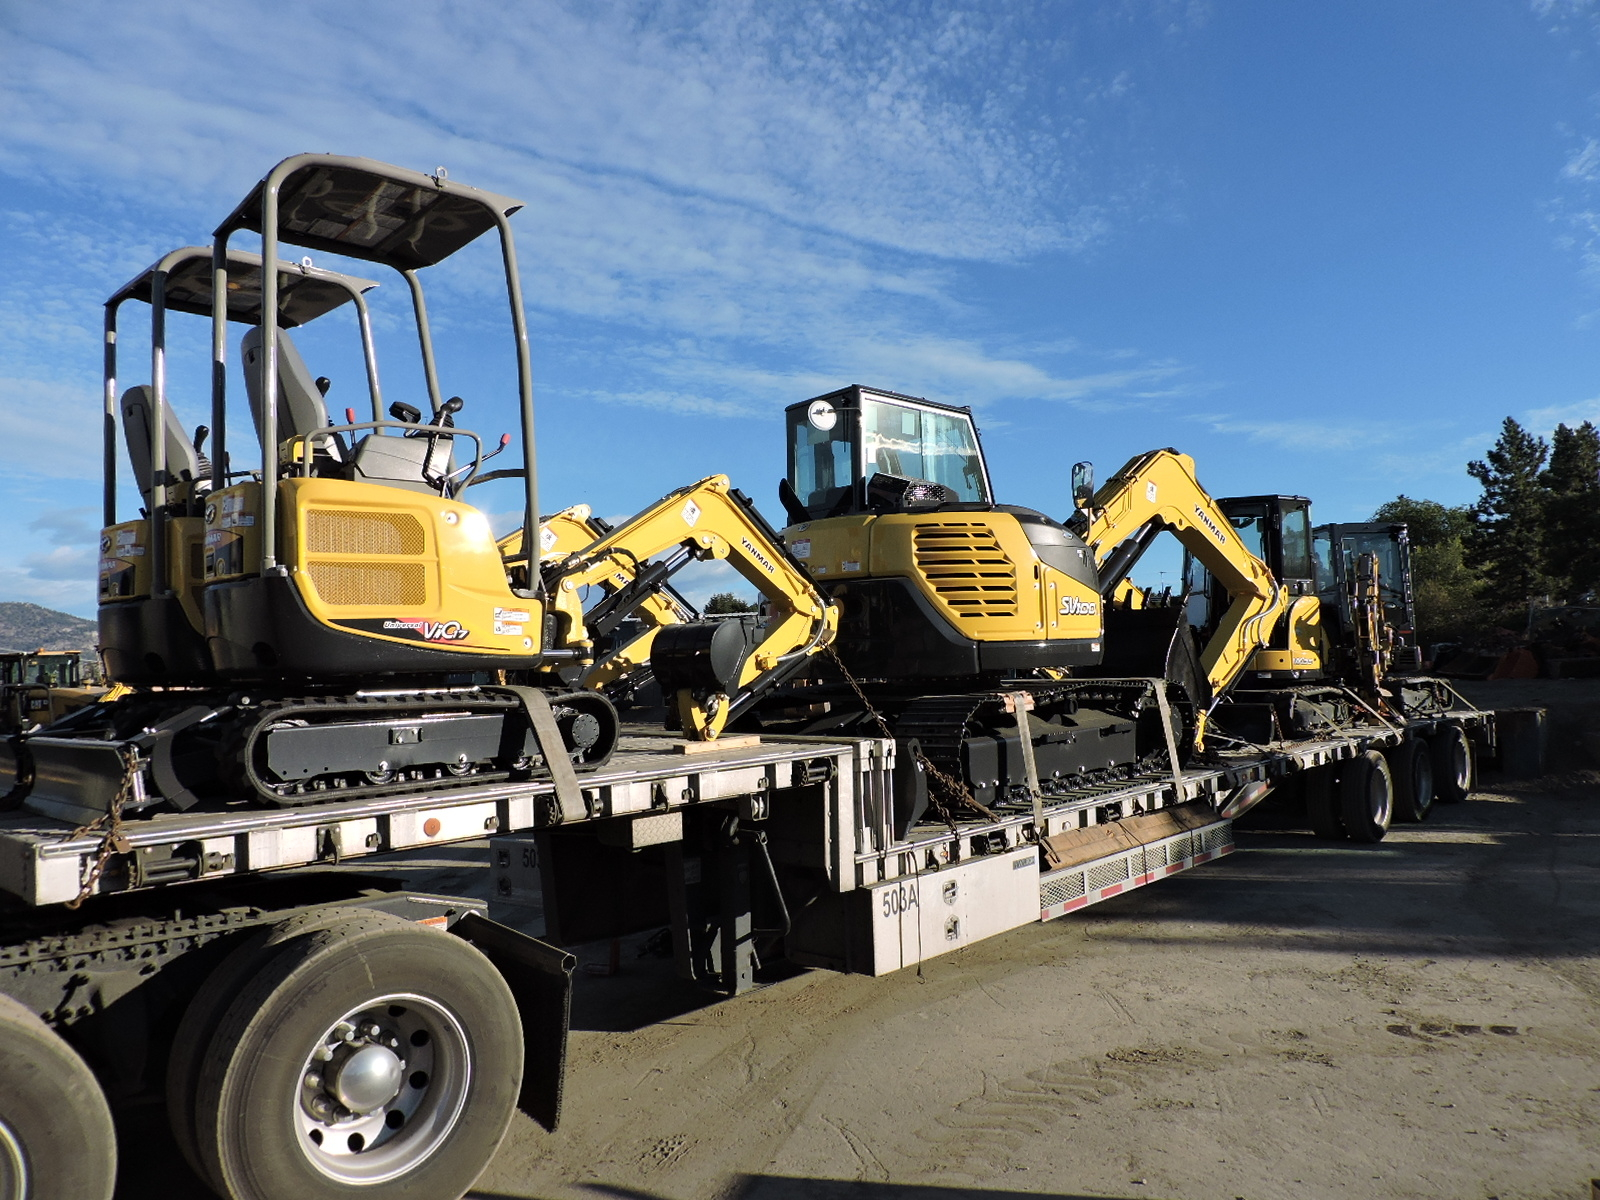 Pacific Rim Equipment Inc in Penticton: We have lots of Yanmar Mini Excavators (available for rent and sale) for those smaller jobs.